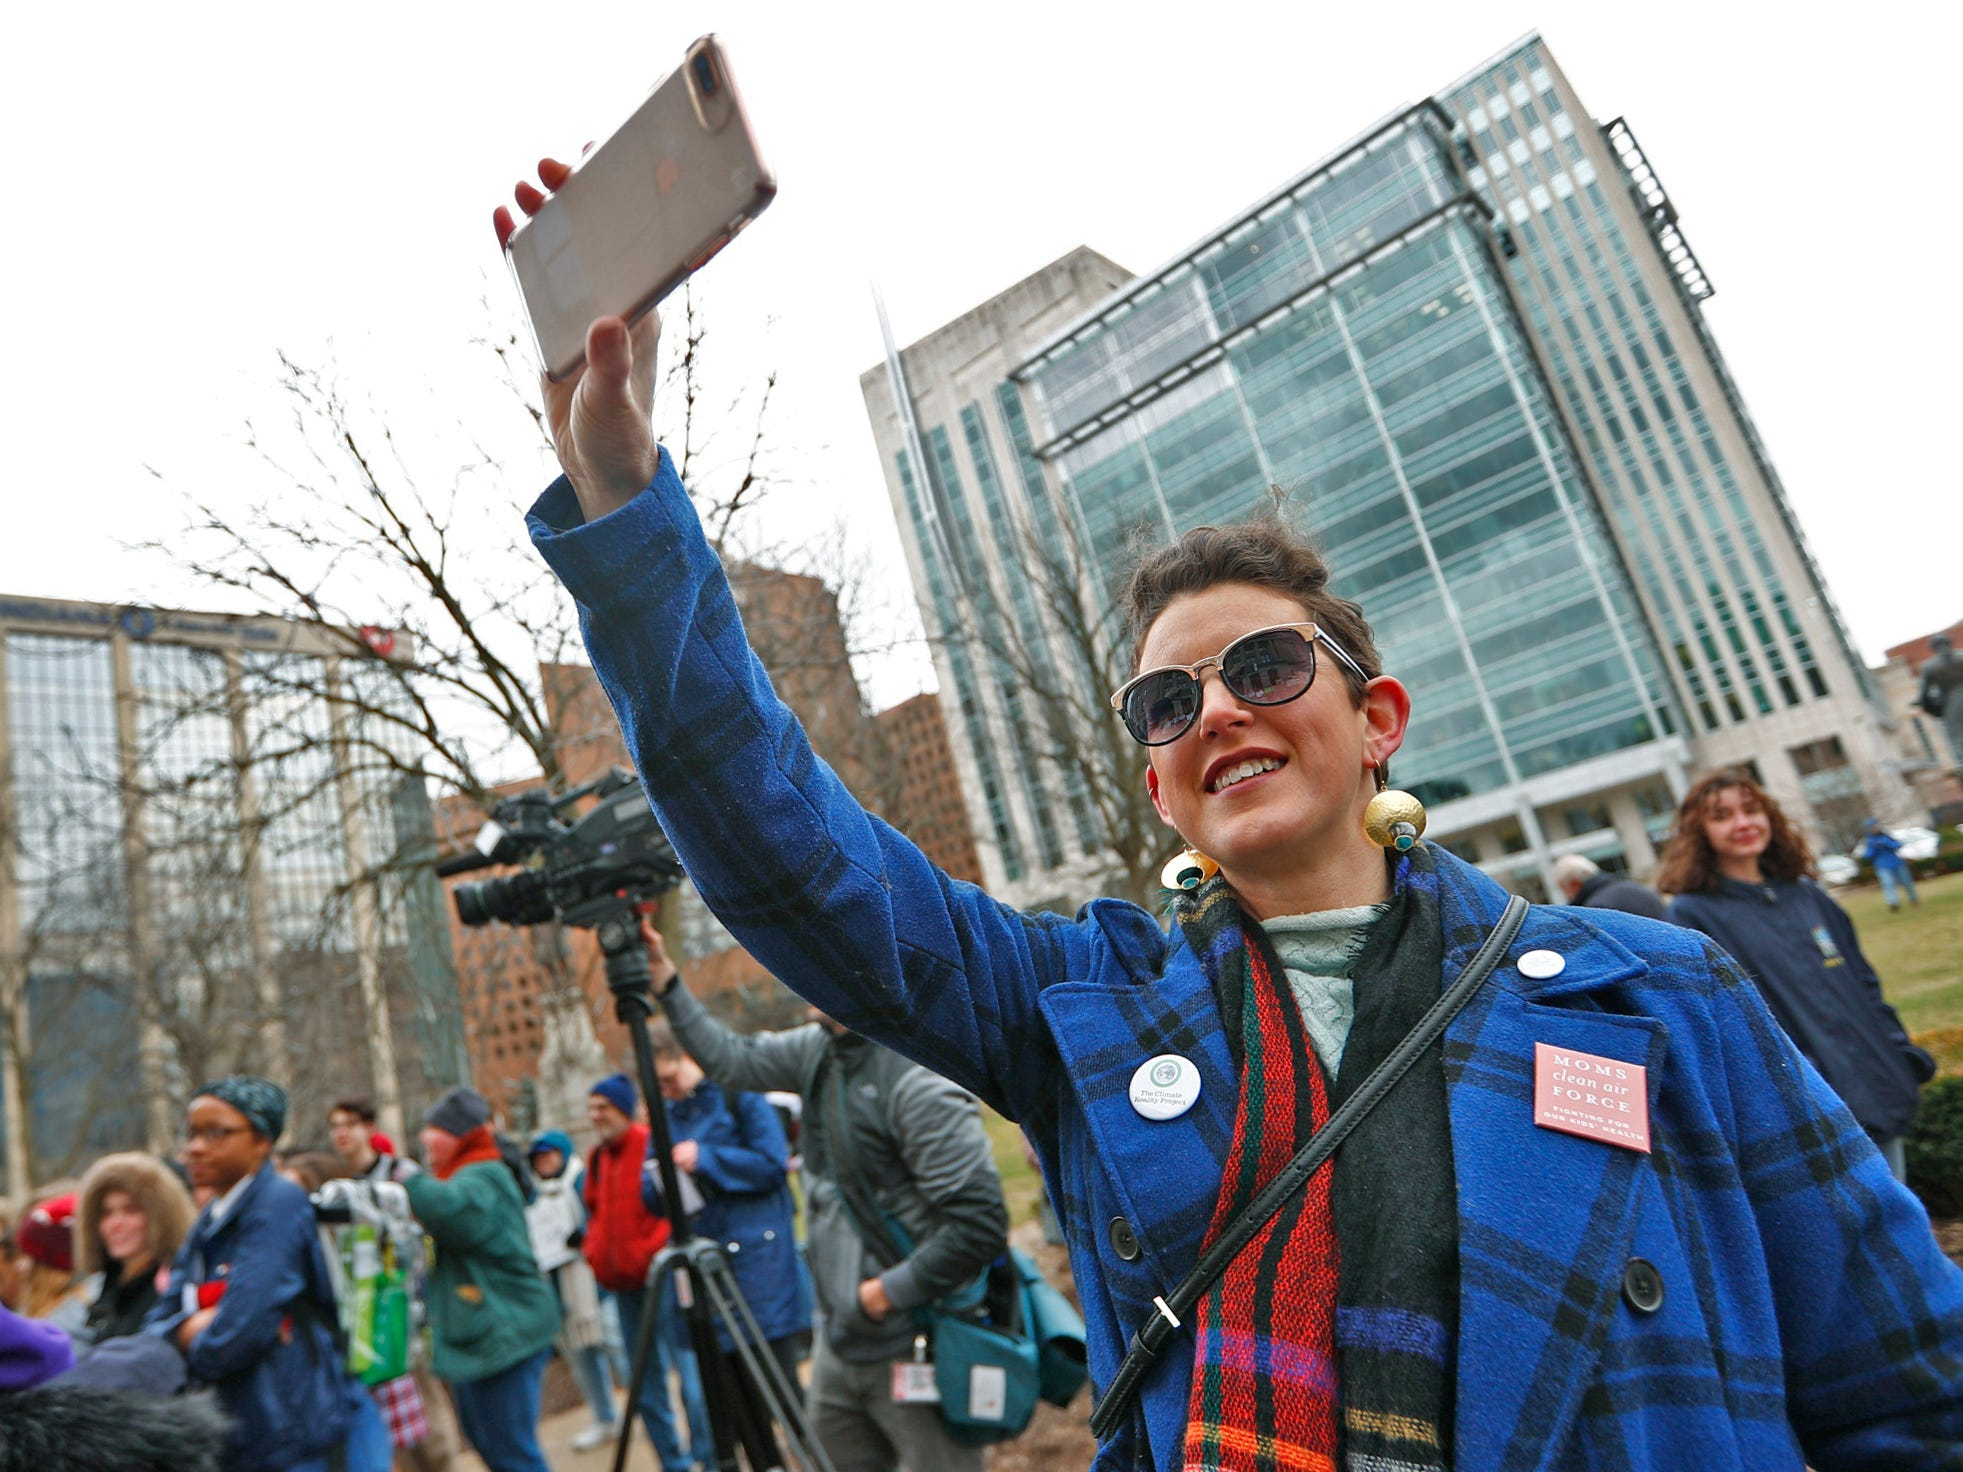 Amanda Shepherd photographs kids protesting, during the Indiana part of the international Climate Strike, Friday, March 15, 2019, held outside the Indiana Statehouse. Her daughter, who participated, is an Allisonville Elementary student. Following in the footsteps of 16-year-old Swedish trailblazer, Greta Thunberg, students around the world are skipping school to protest government inaction on climate change.